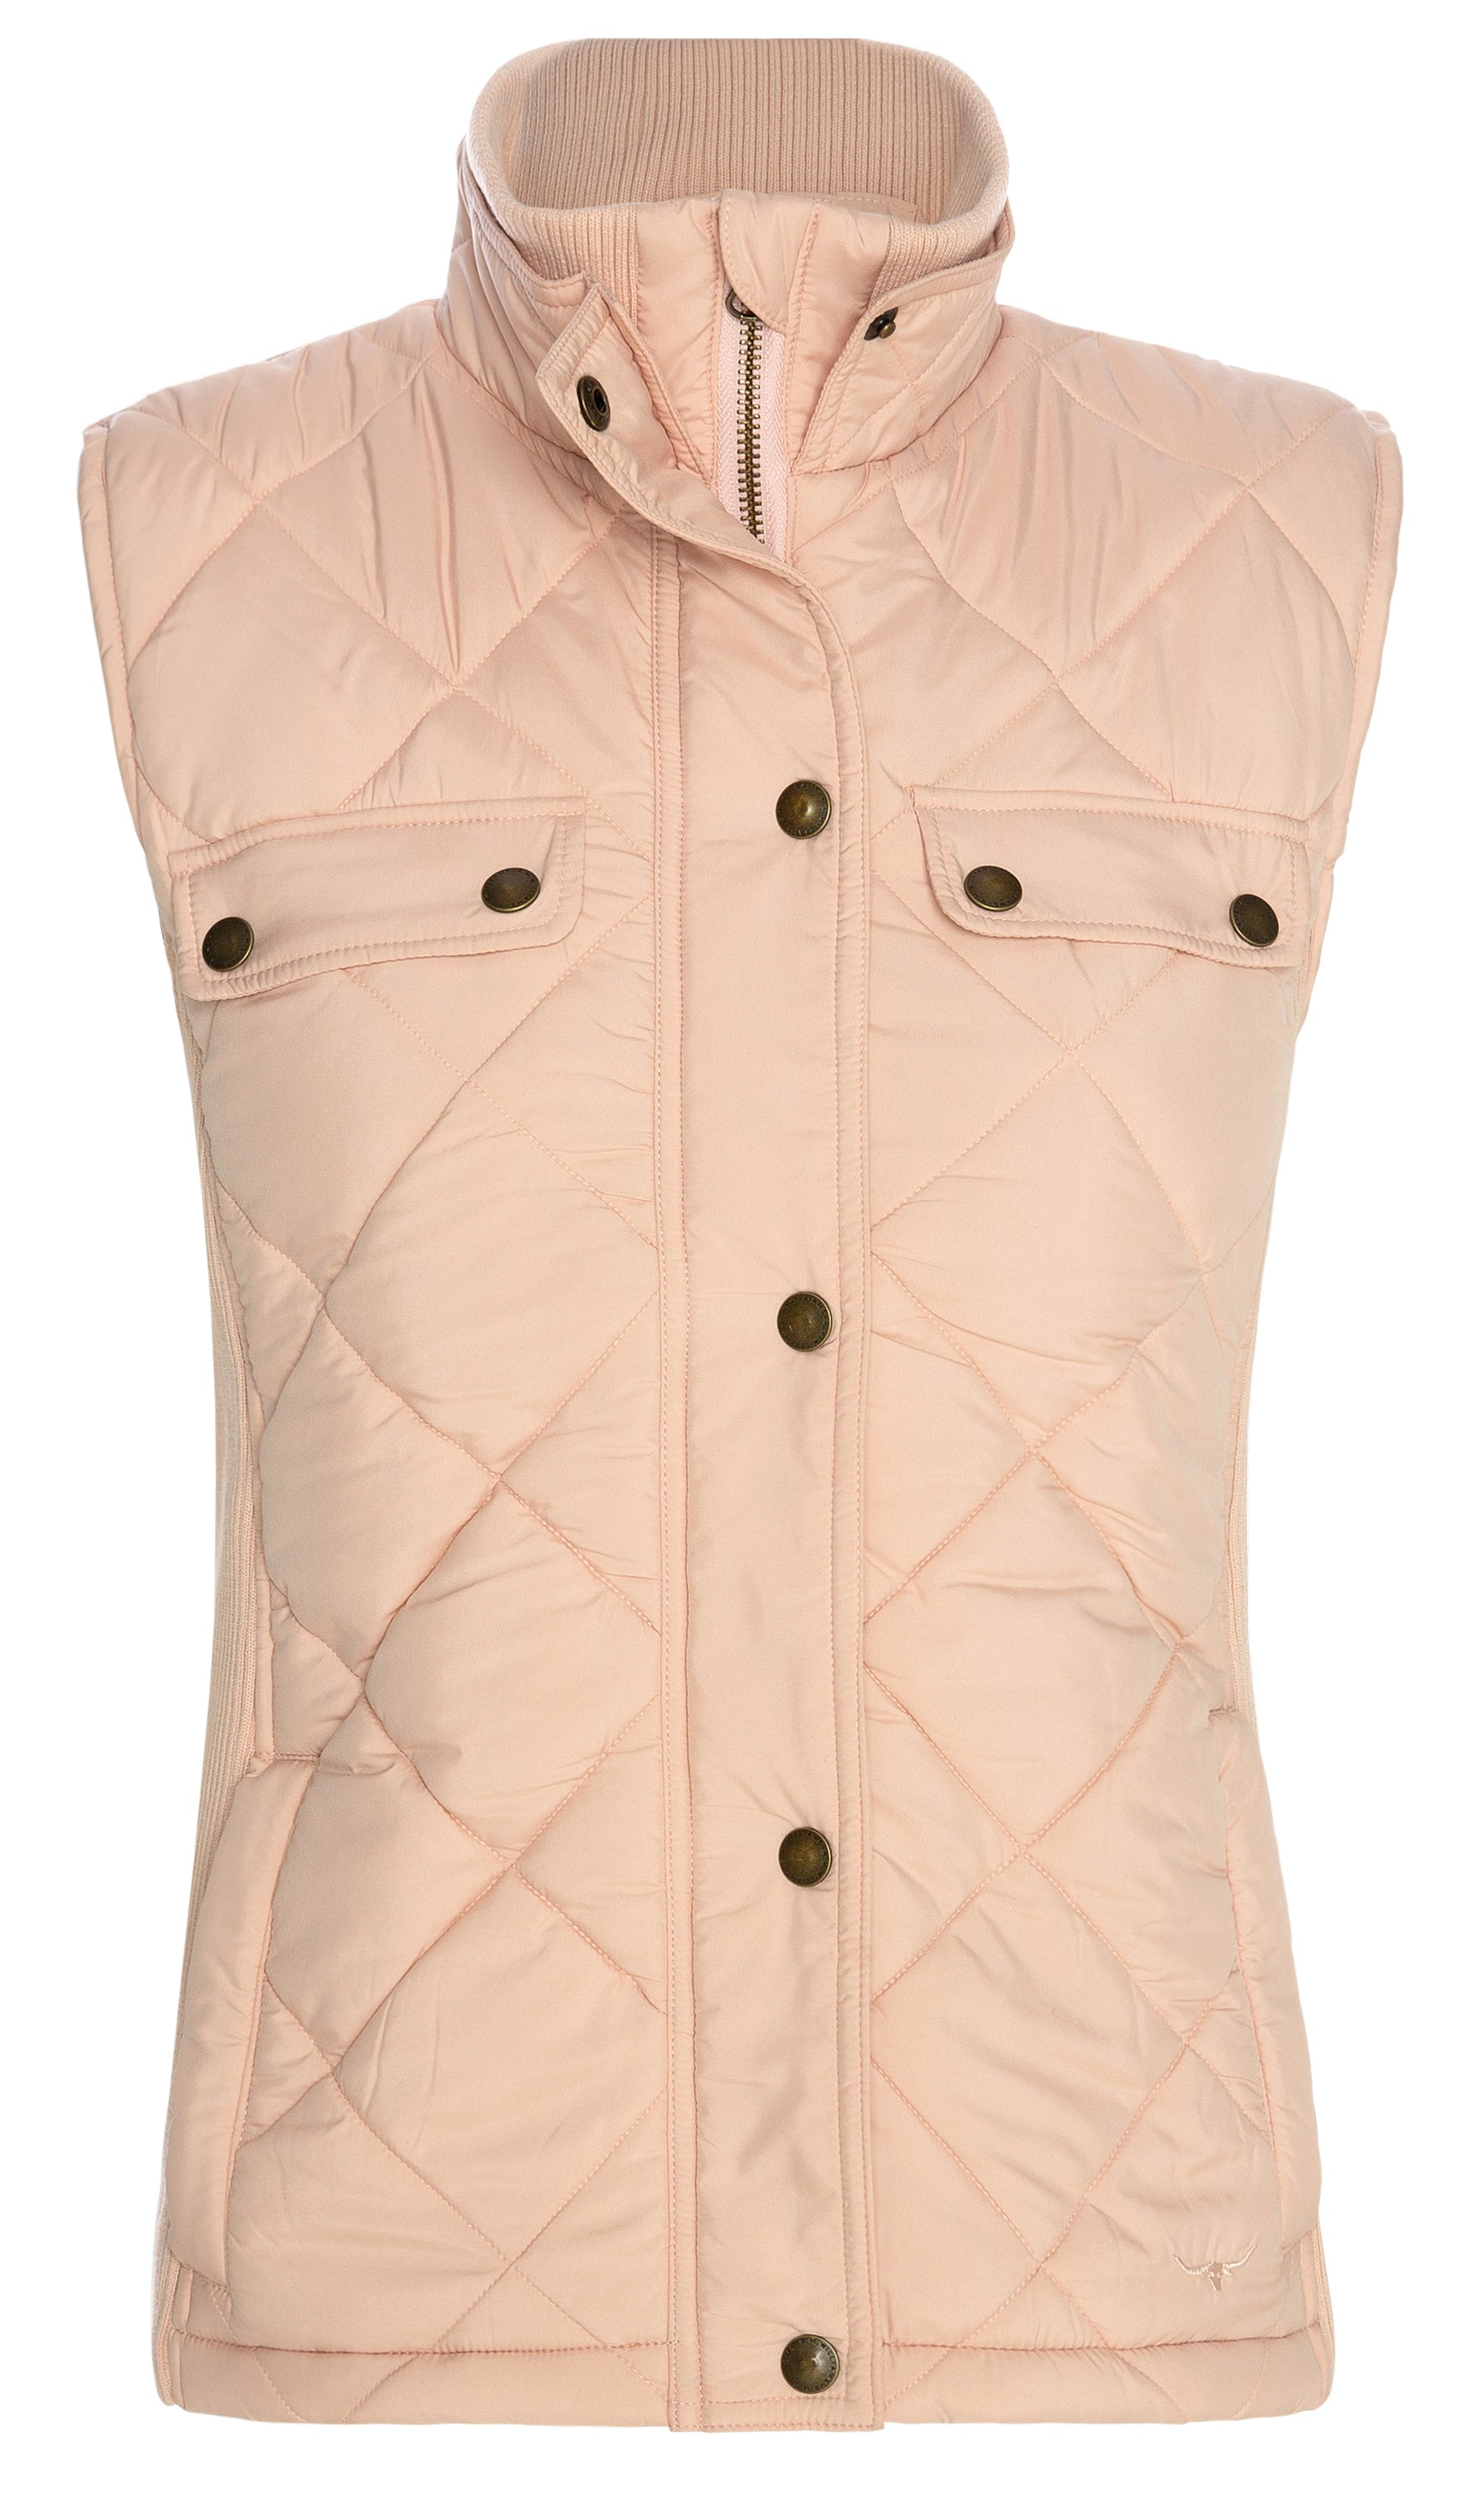 RM Williams Alexandria Vest (4655604564105)